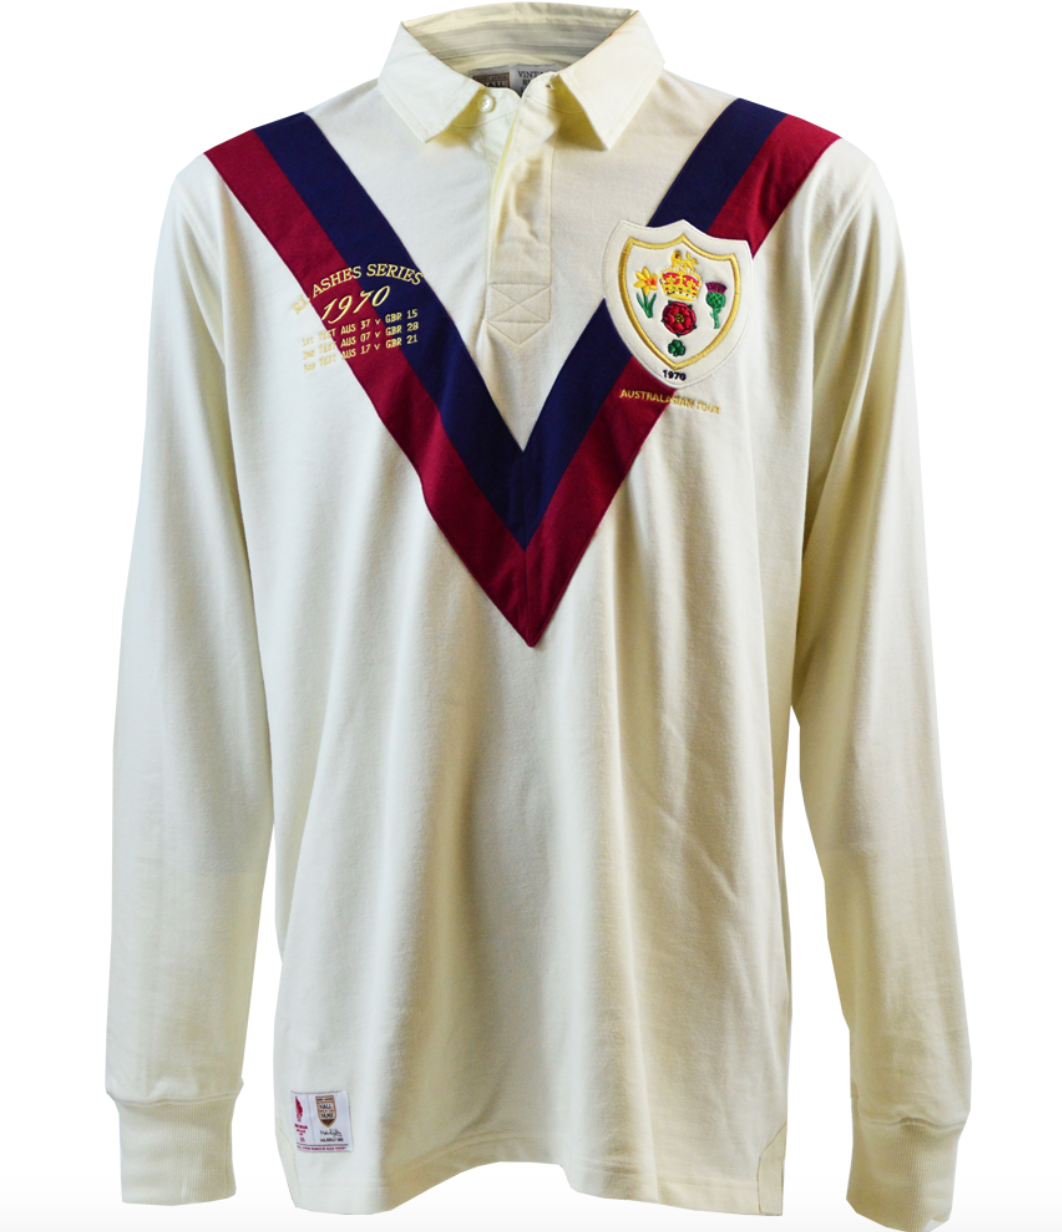 cb511e83491 The Billy Boston range has a jersey and polo based on Wigan s 1959 and 1965  Challenge Cup successes and his Great Britain jersey from the 1962 Lions  tour.